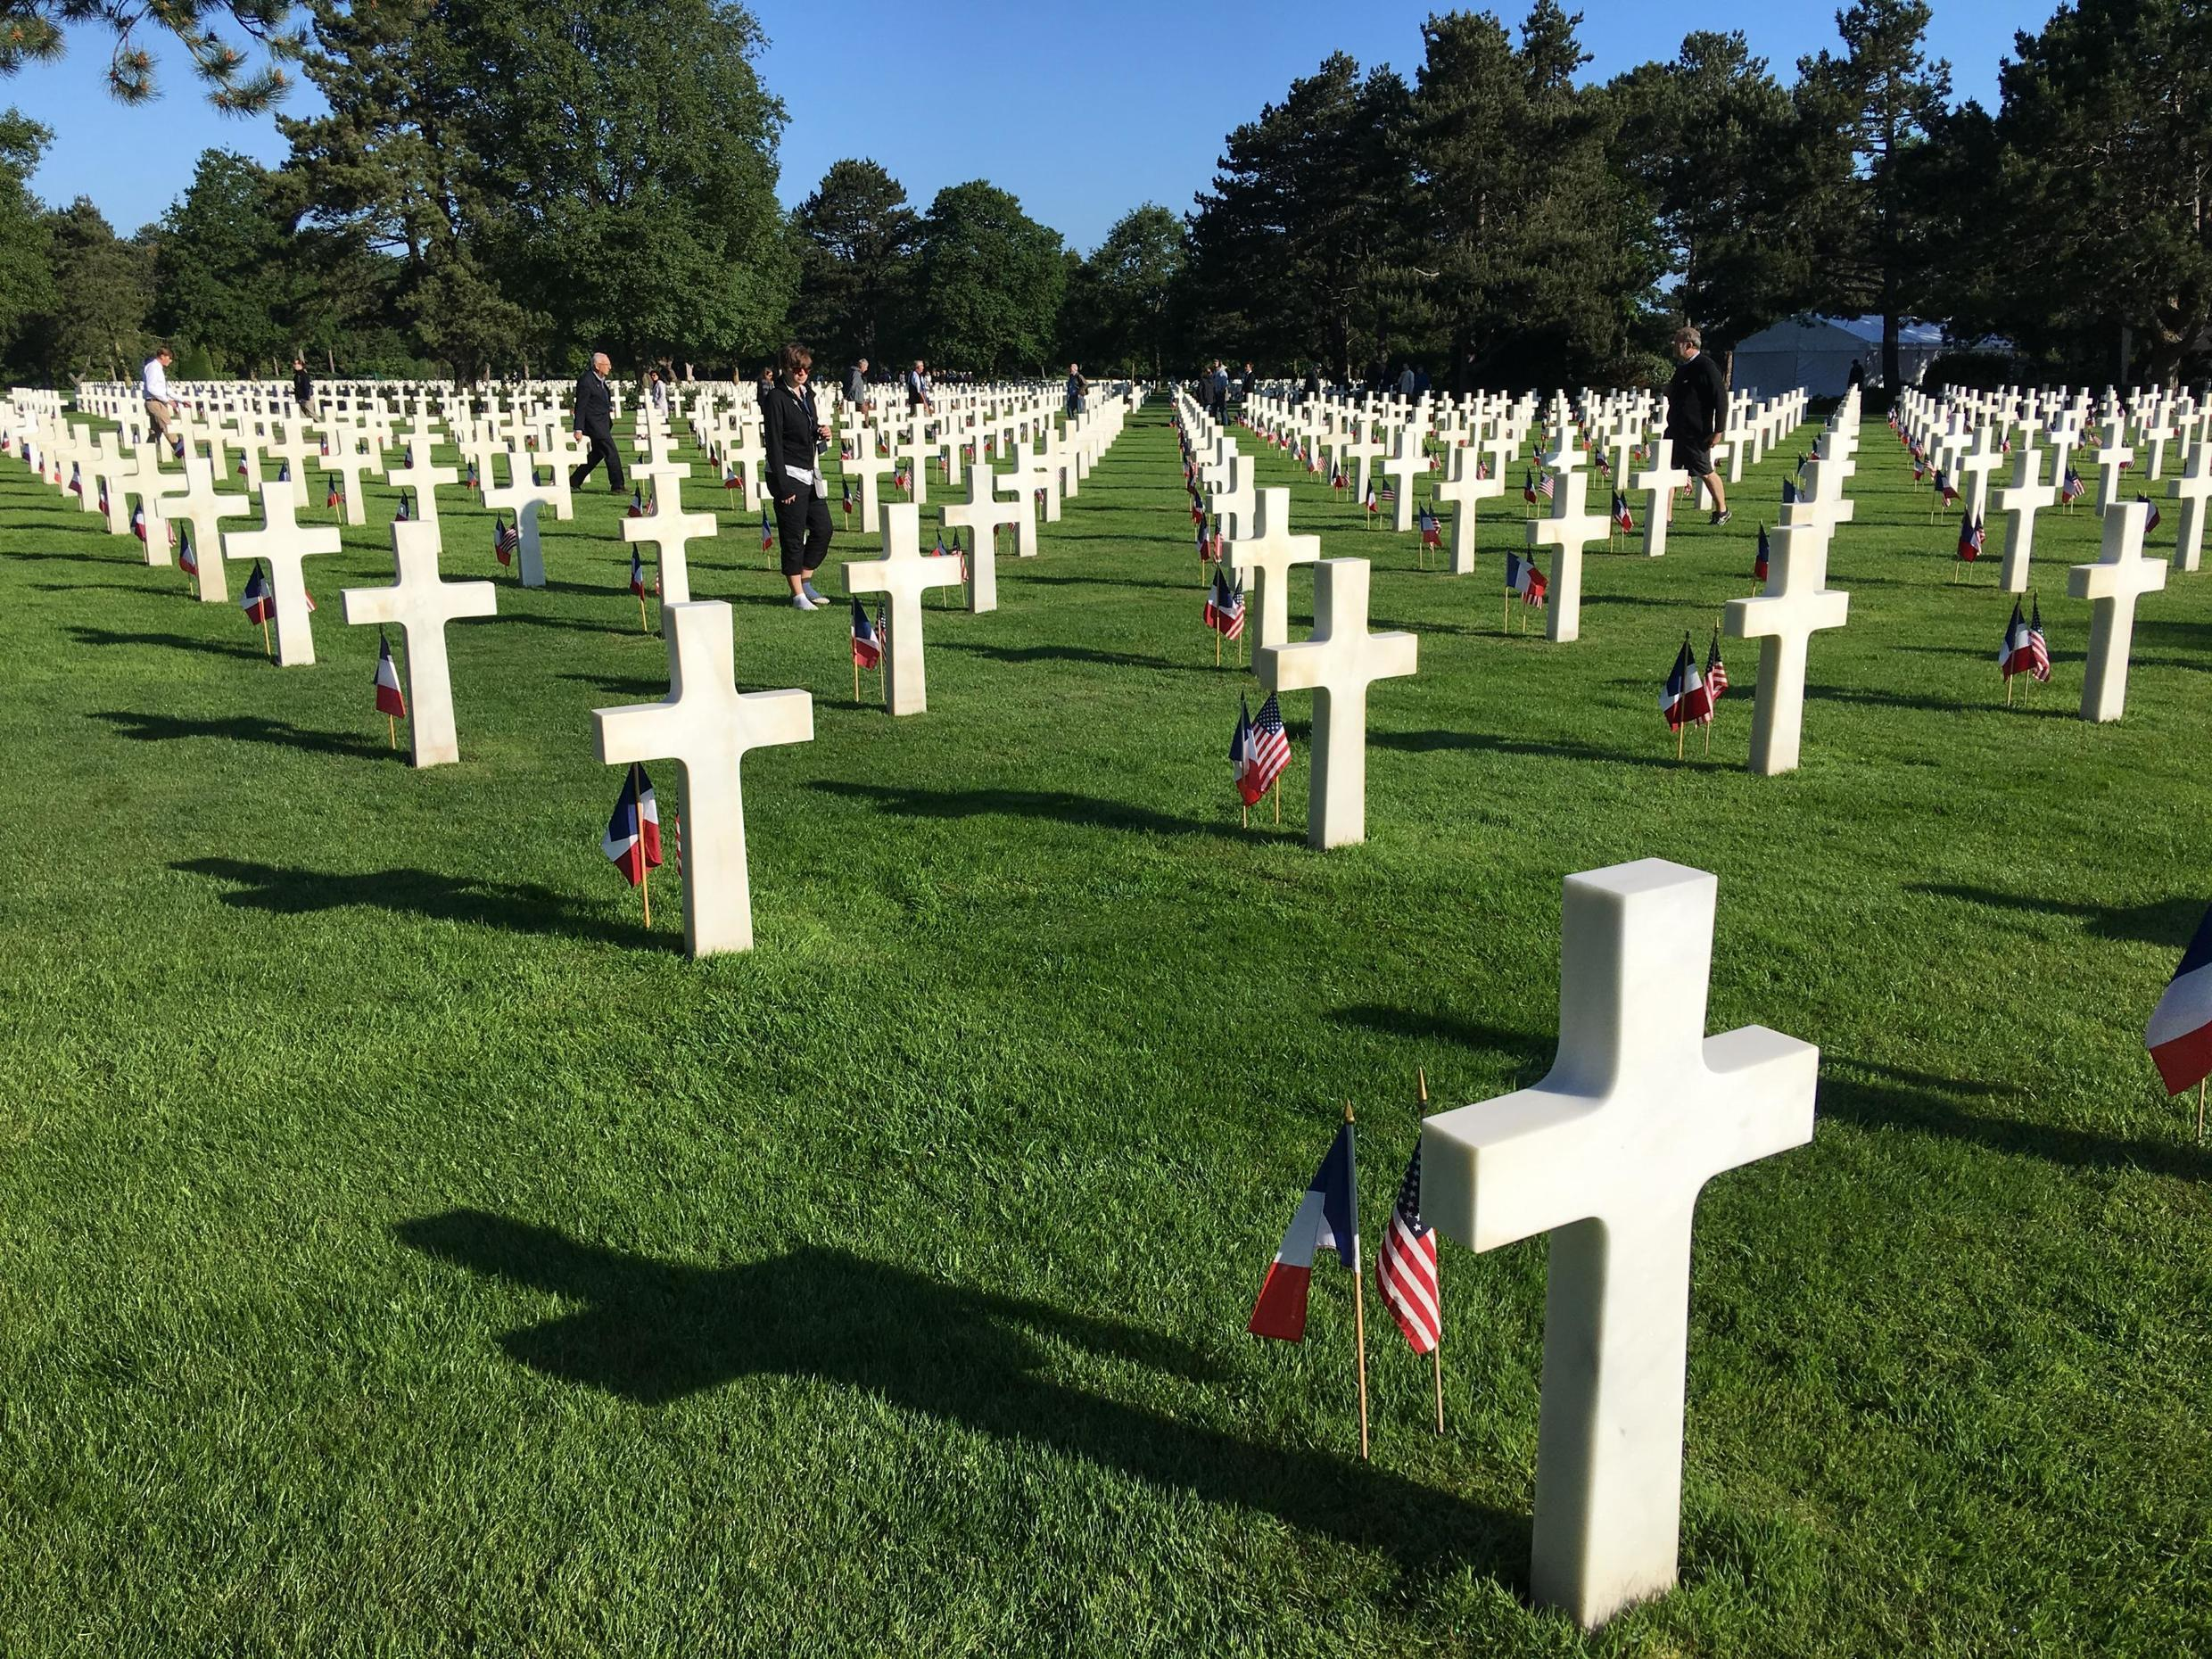 Colleville Cemetery contains the remains of 9,388 American military dead, most of whom were killed during the Battle of Normandy and ensuing military operations in World War II.